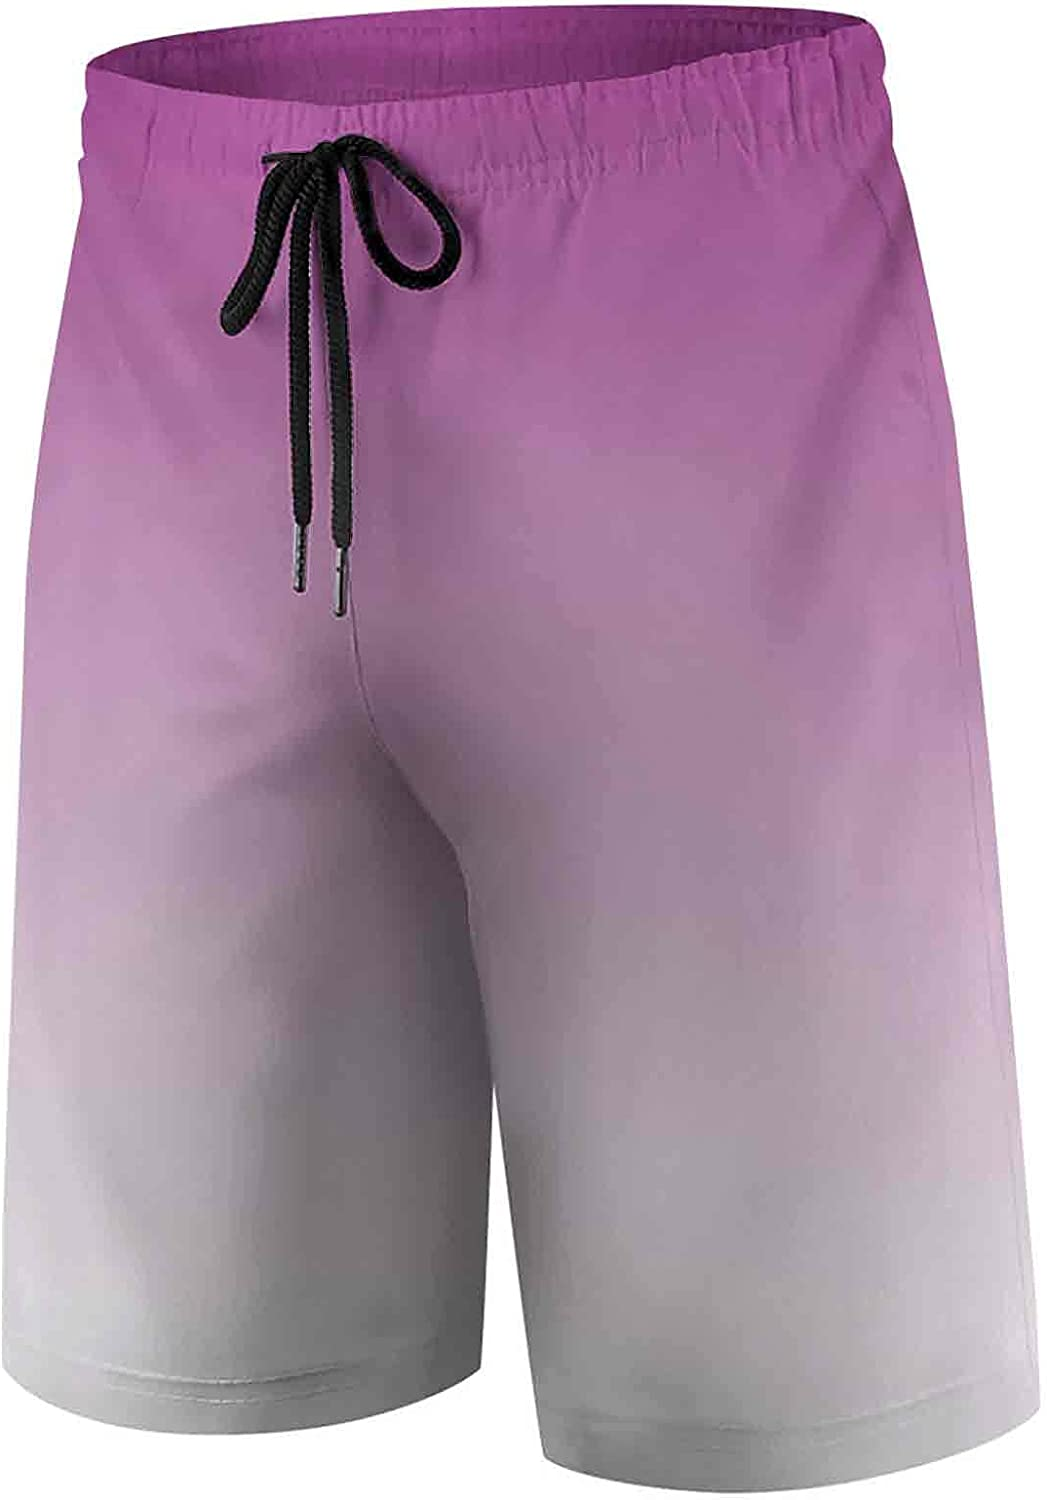 Boys' Quick Dry Beach Swim TrunkPrincess Pink Medieval Colors Inspired